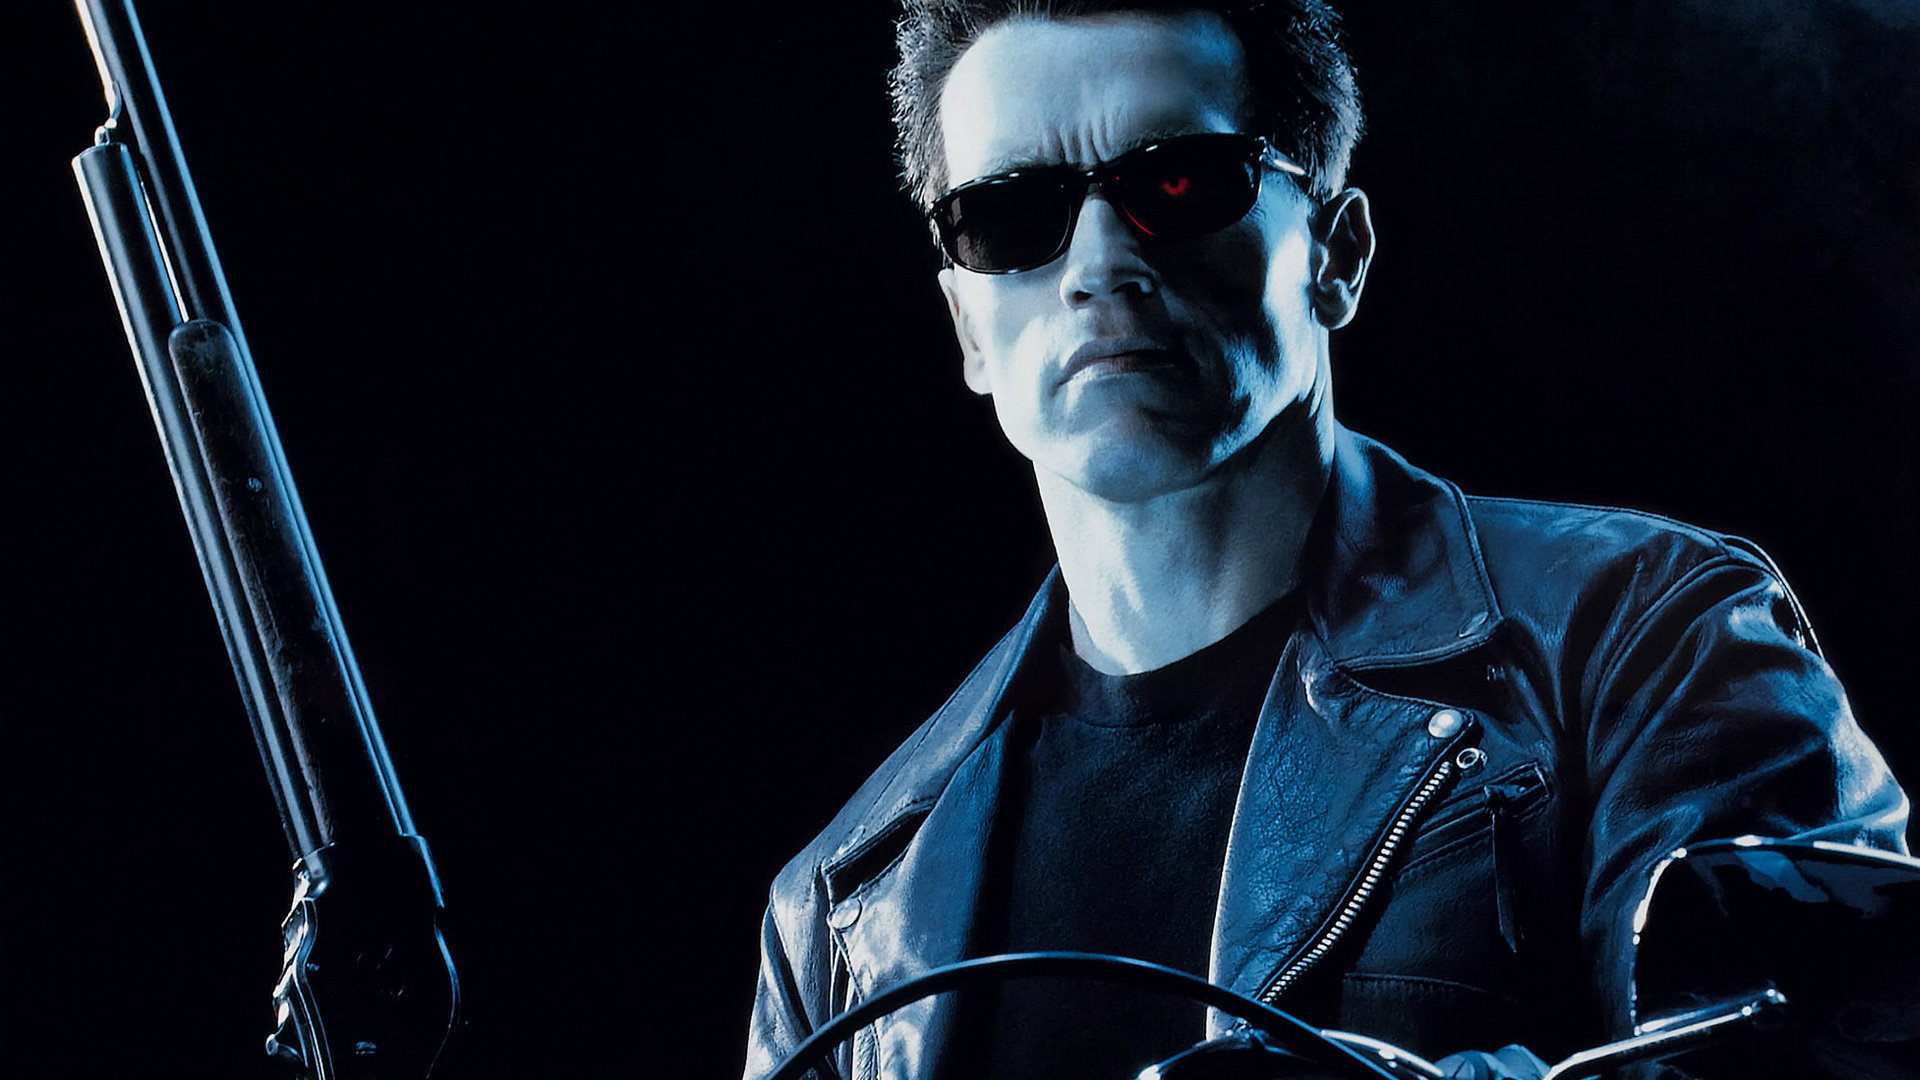 Terminator 2: Judgment Day Wallpapers